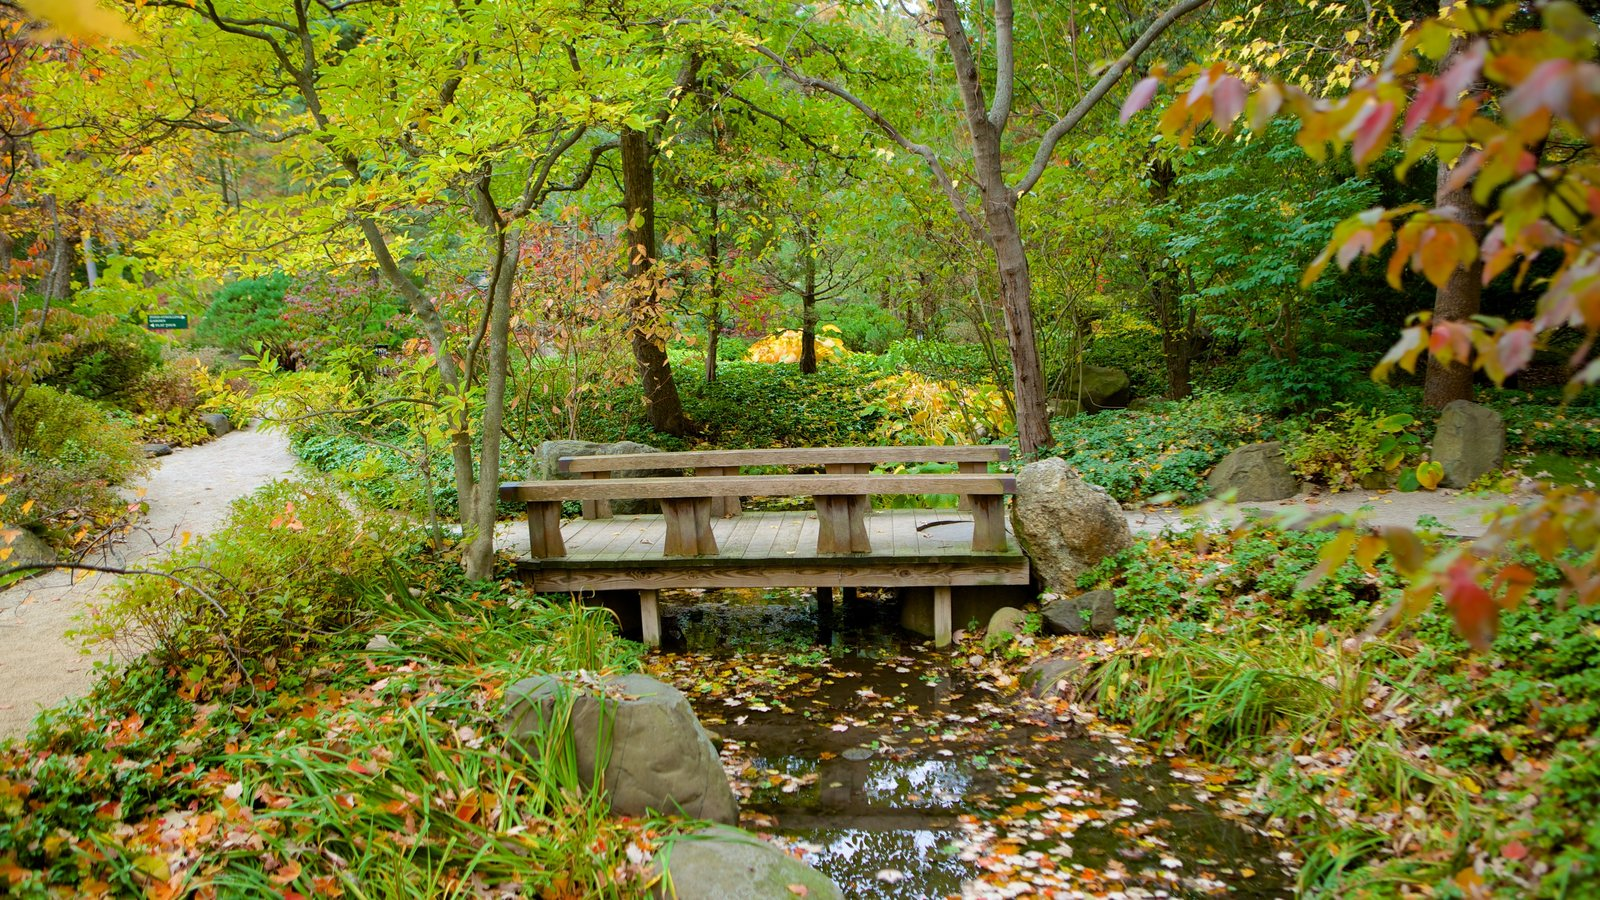 Anderson Japanese Gardens showing a park and a river or creek